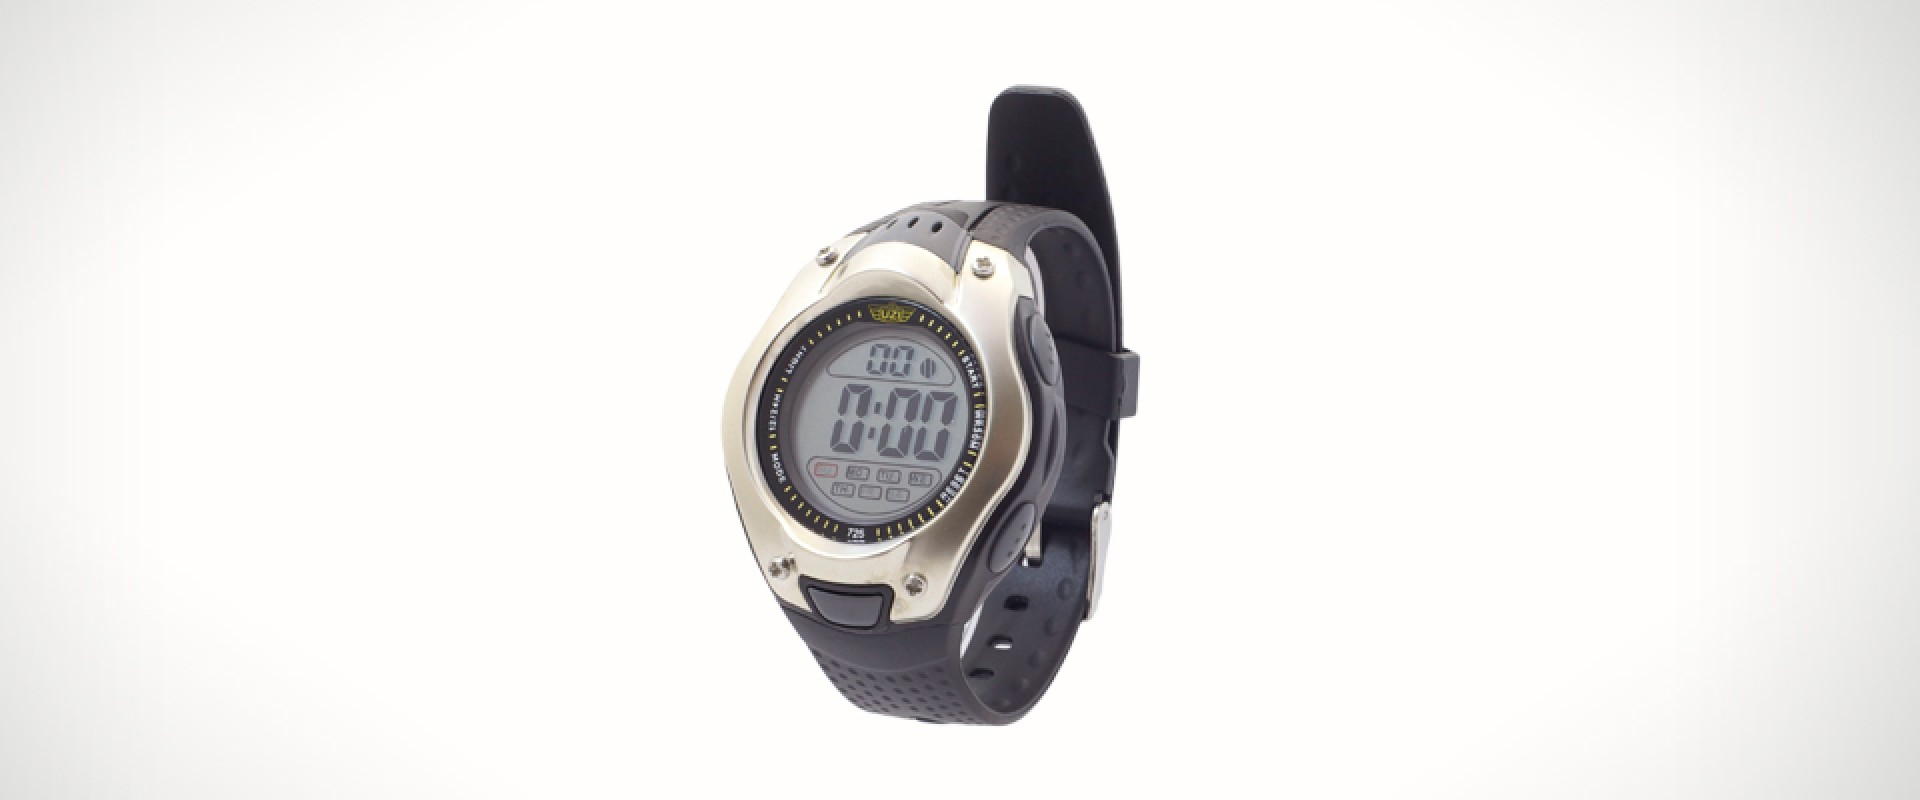 UZI Digital Watch 725